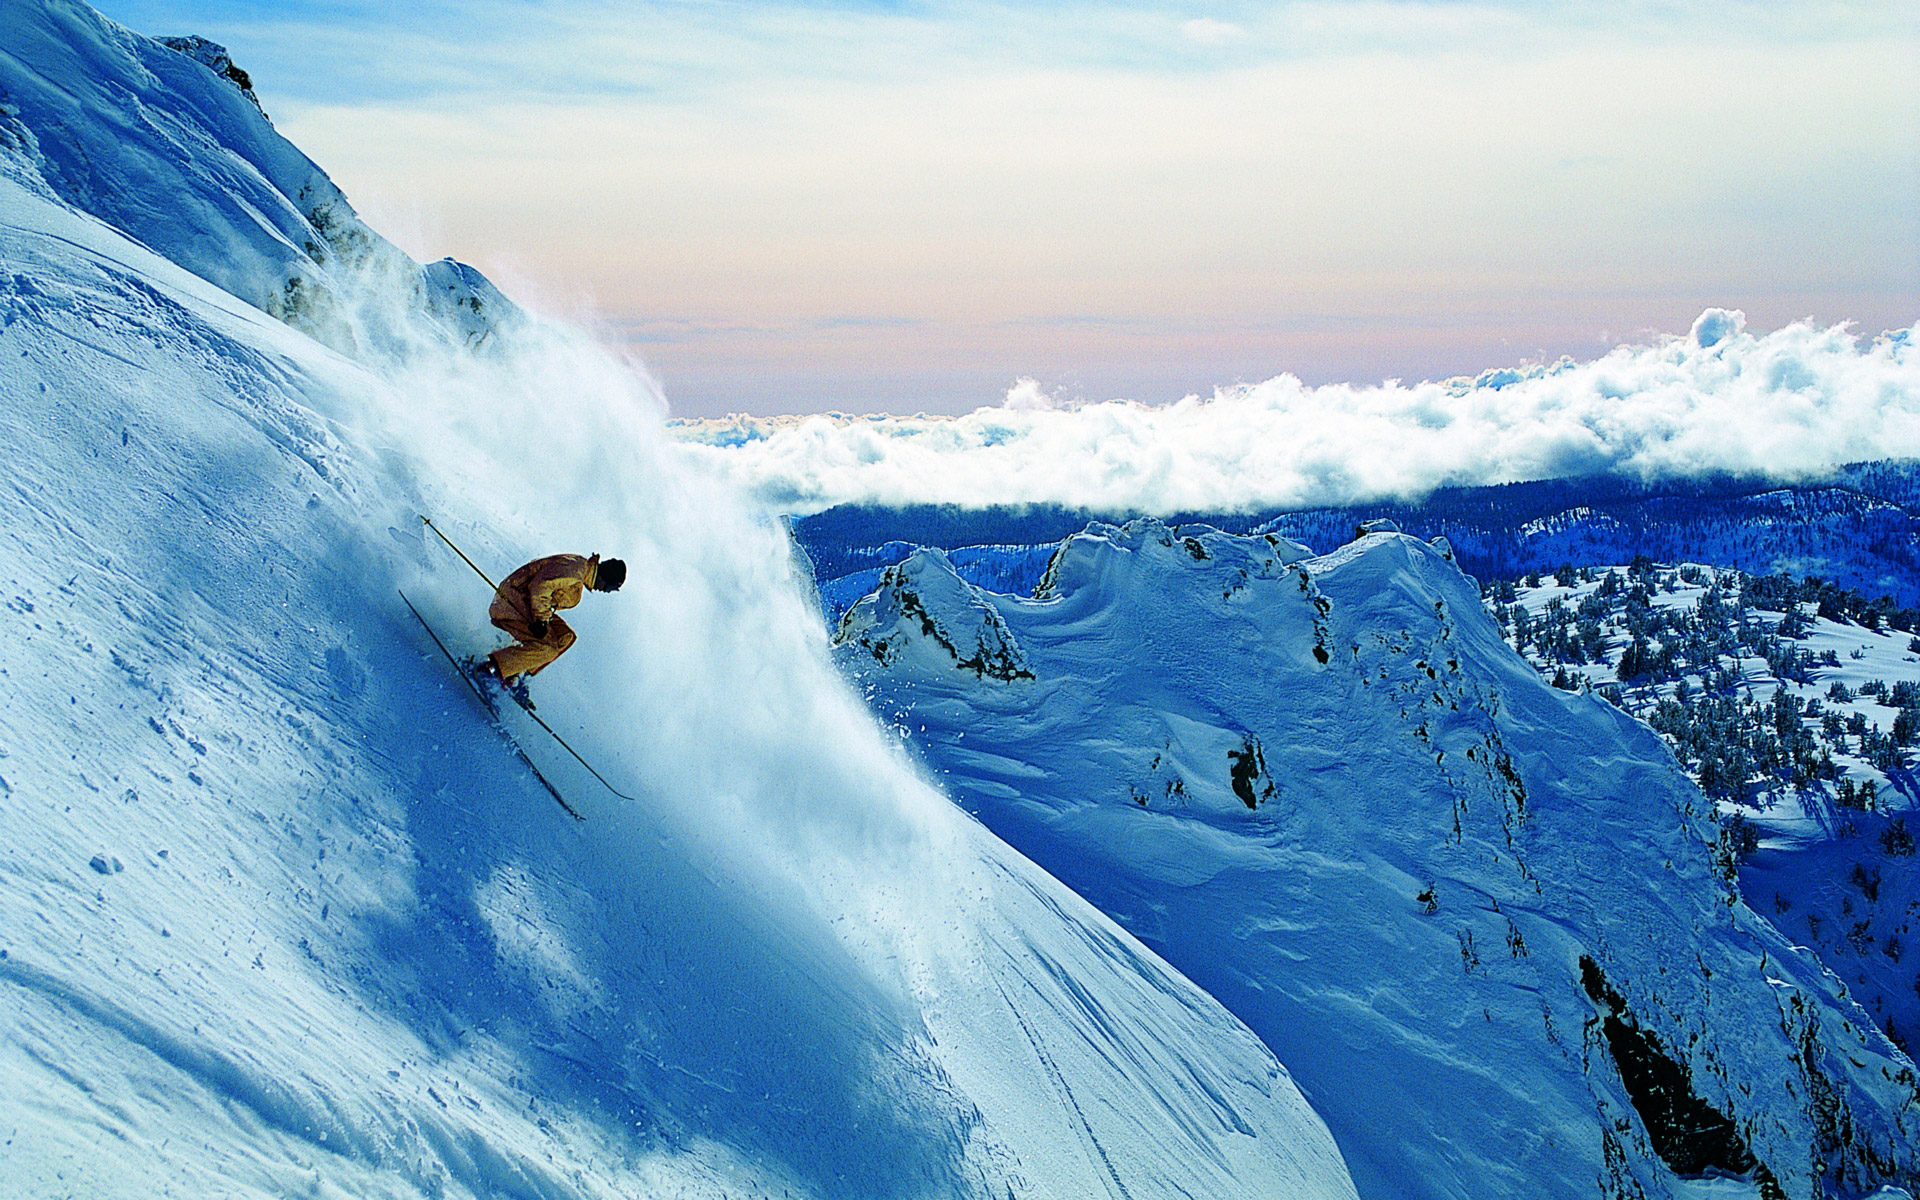 Extreme Wallpaper 1920x1080: Extreme Skiing Wallpaper